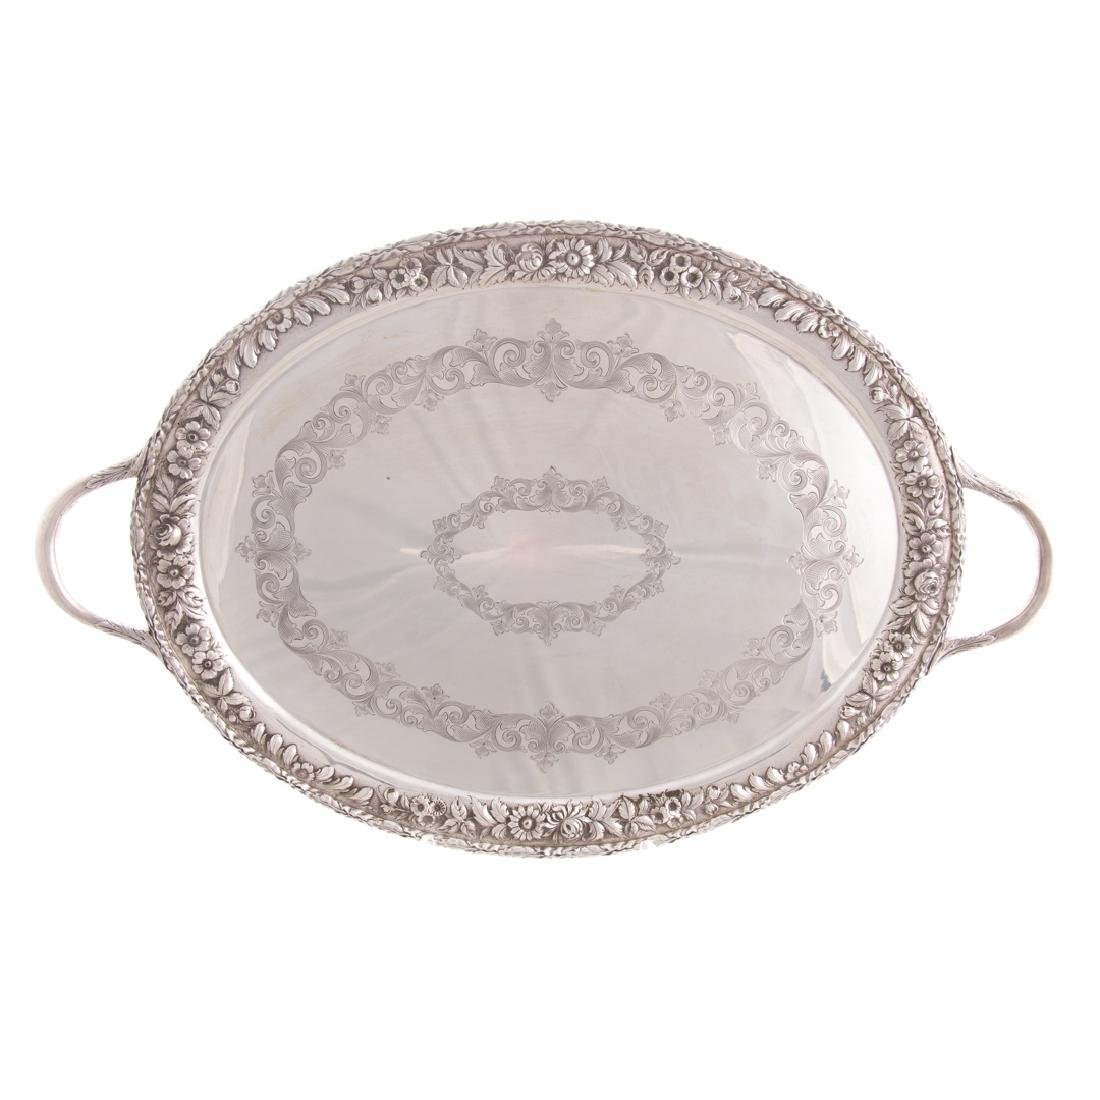 Kirk sterling silver waiter tray in Repousse